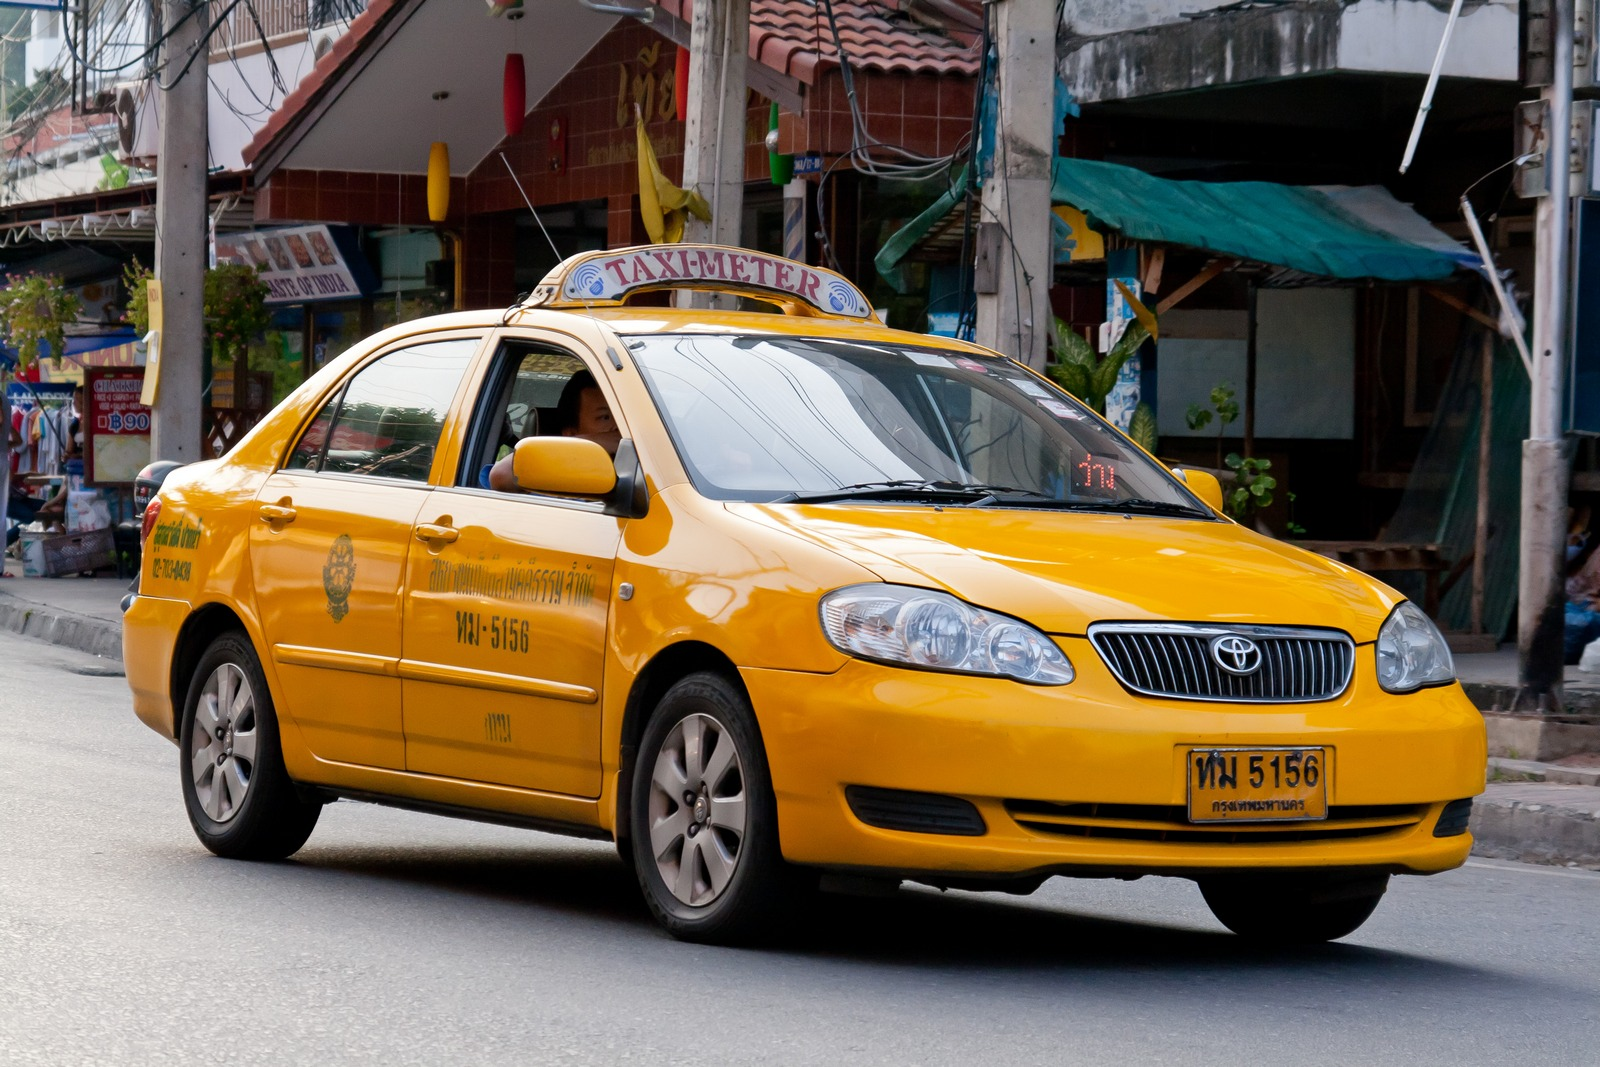 Toyota Madison Wi >> File:Taxi-meter in Pattaya 03.jpg - Wikimedia Commons